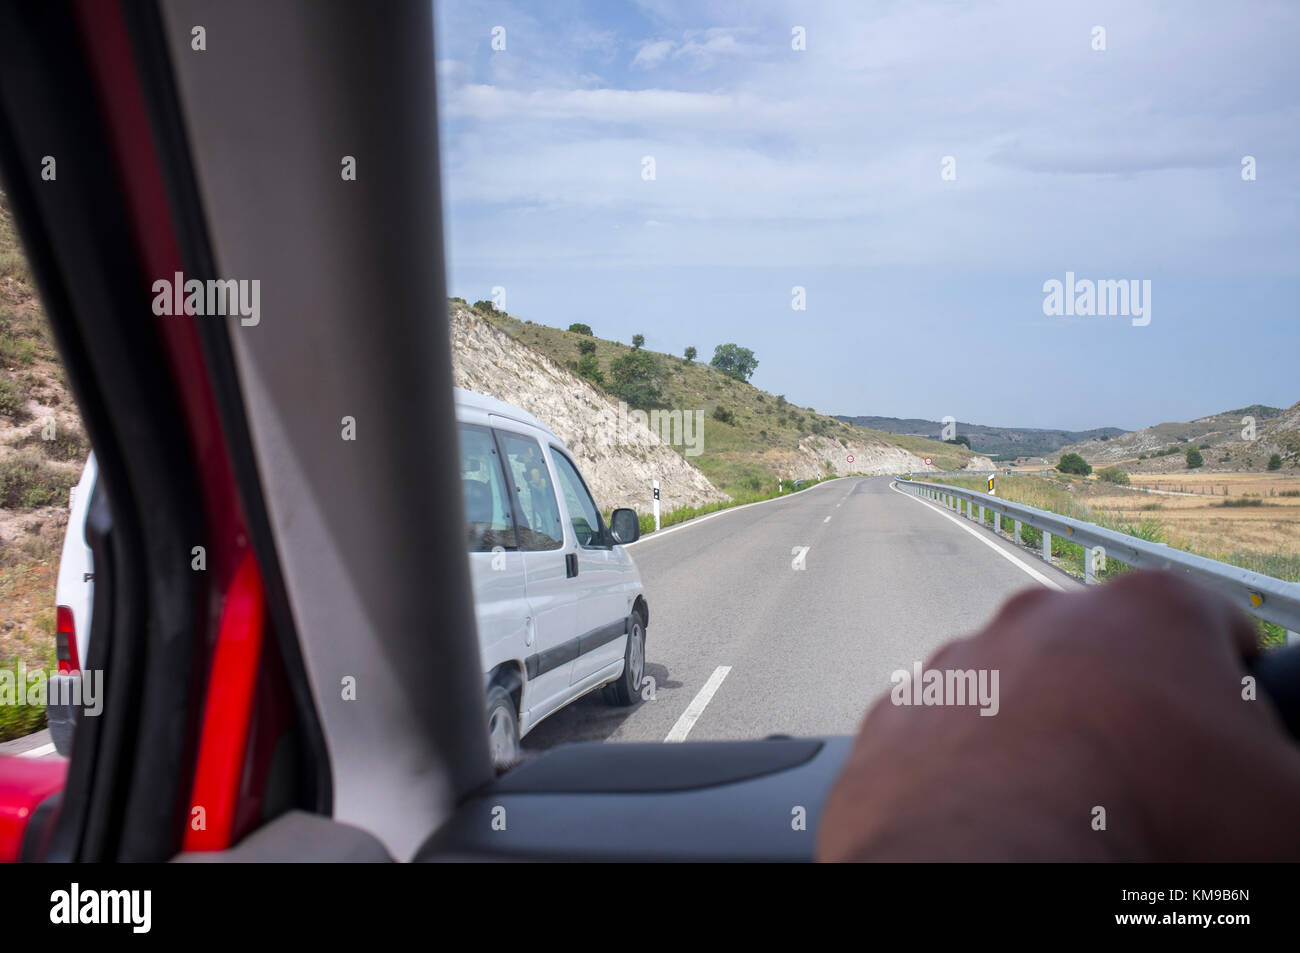 Driver being overtaken at local road. View from the inside of the car - Stock Image